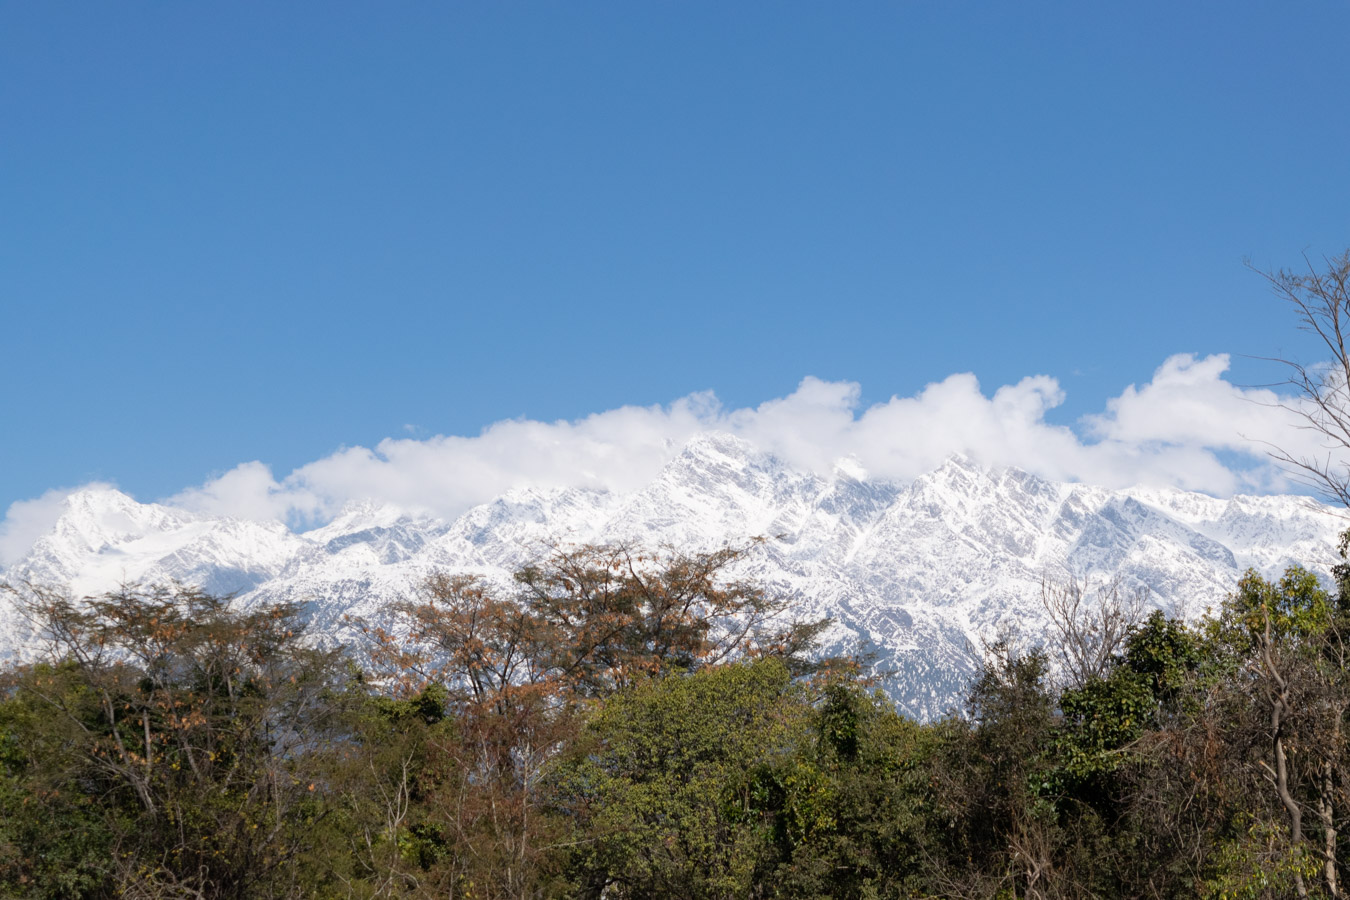 The Dhauladhar ranges